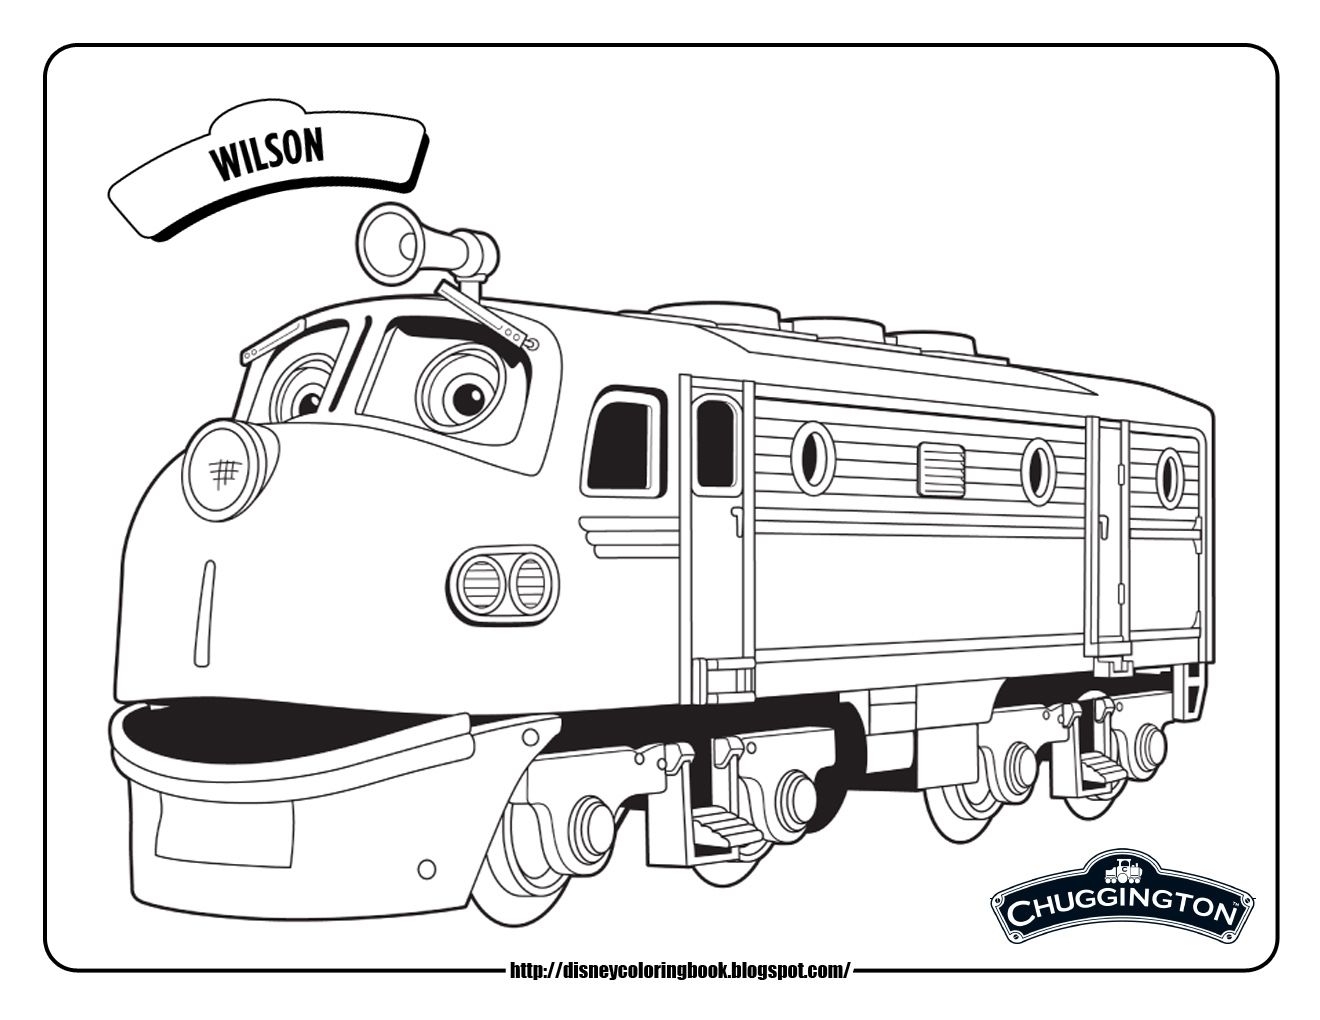 Uncategorized Chuggington Coloring Page chuggington coloring pages wilson train pages